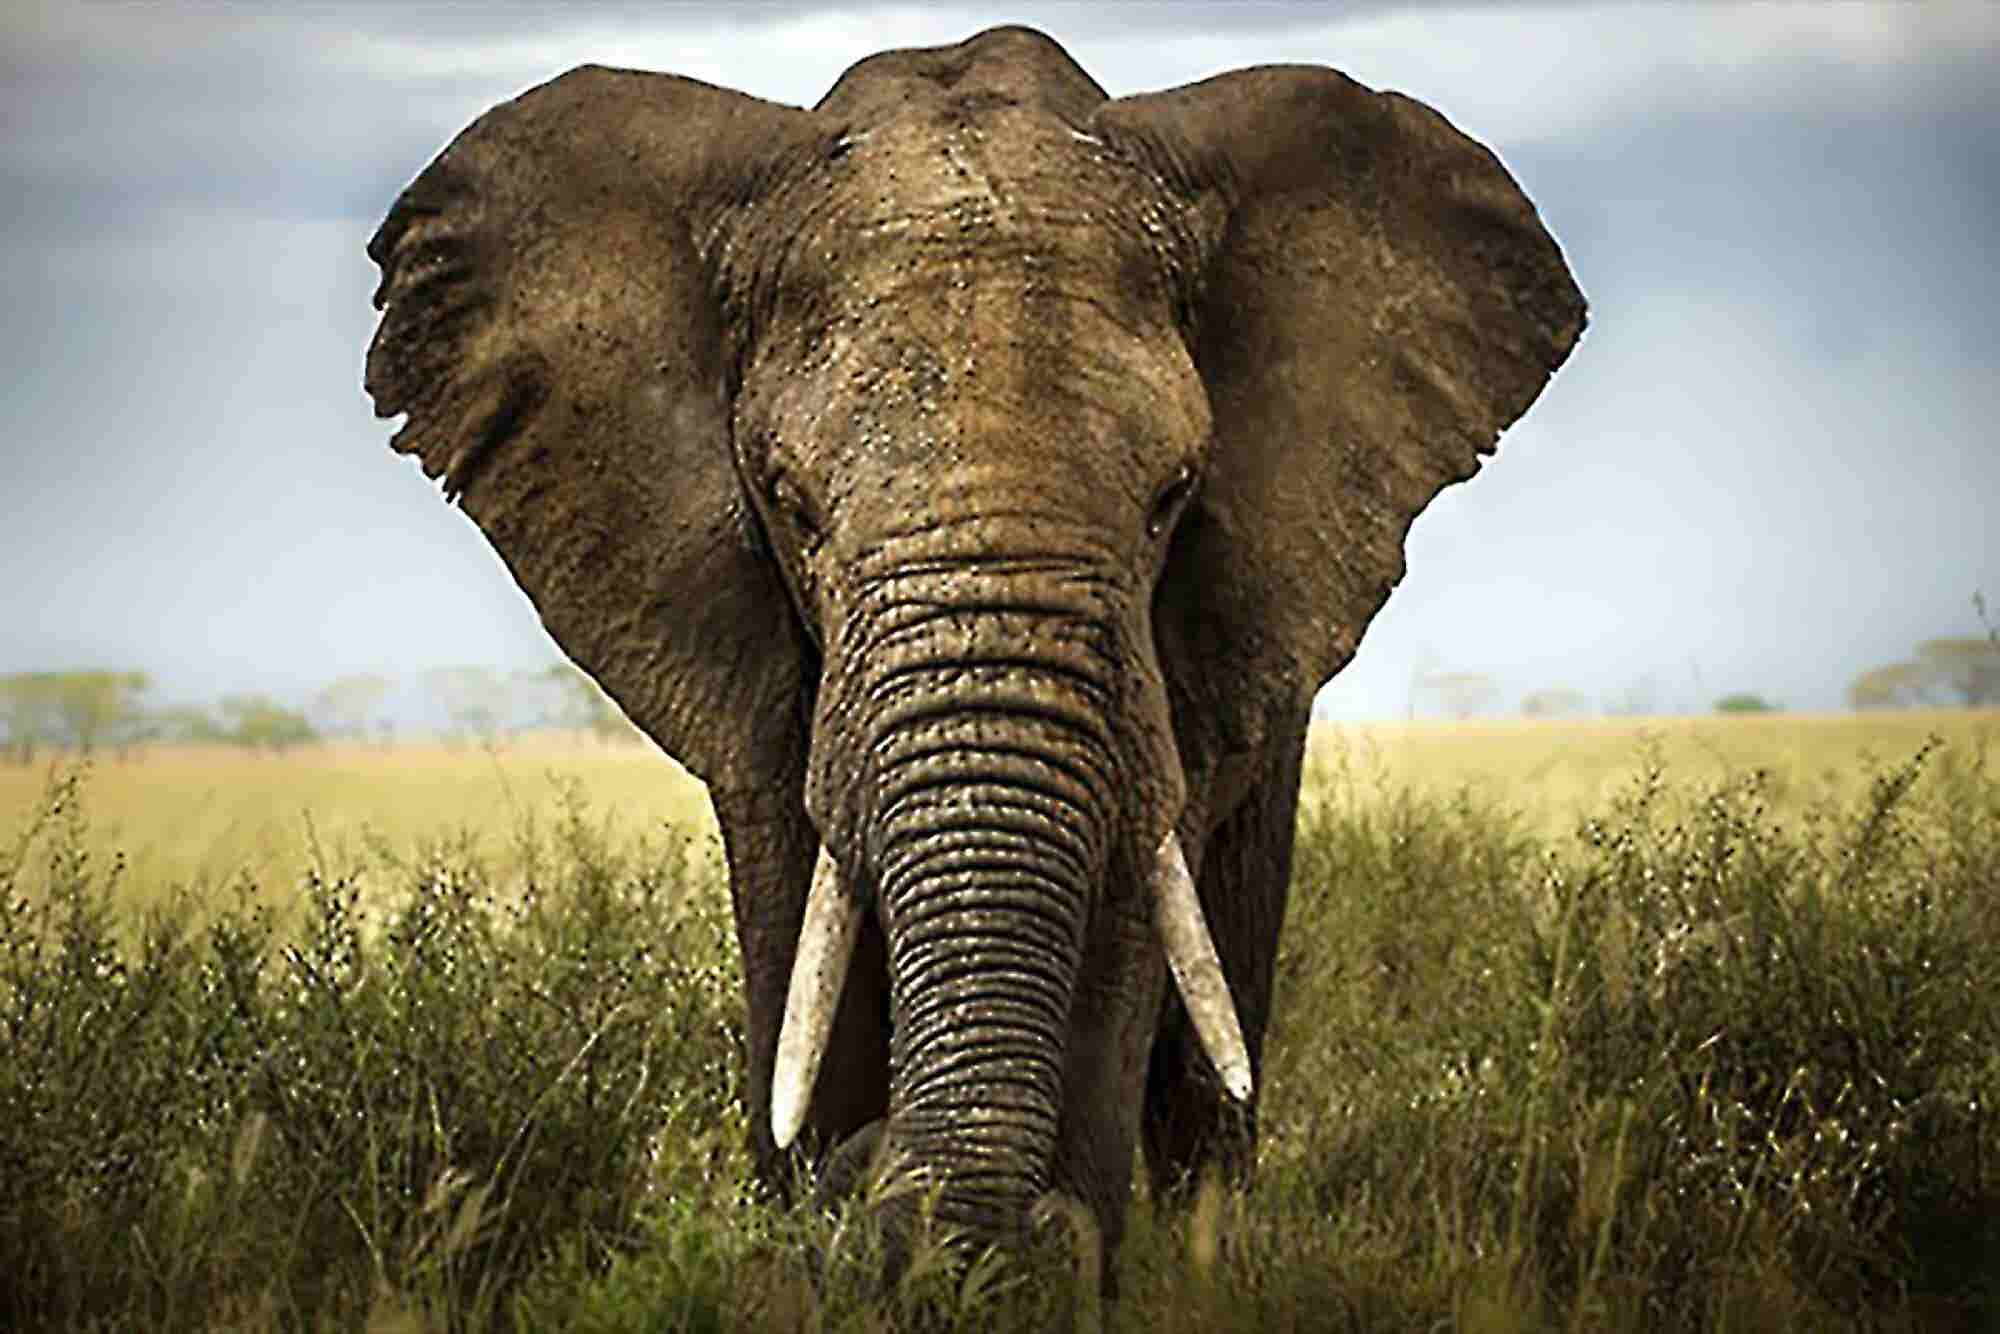 Great CEOs Deal With 'Elephants' First